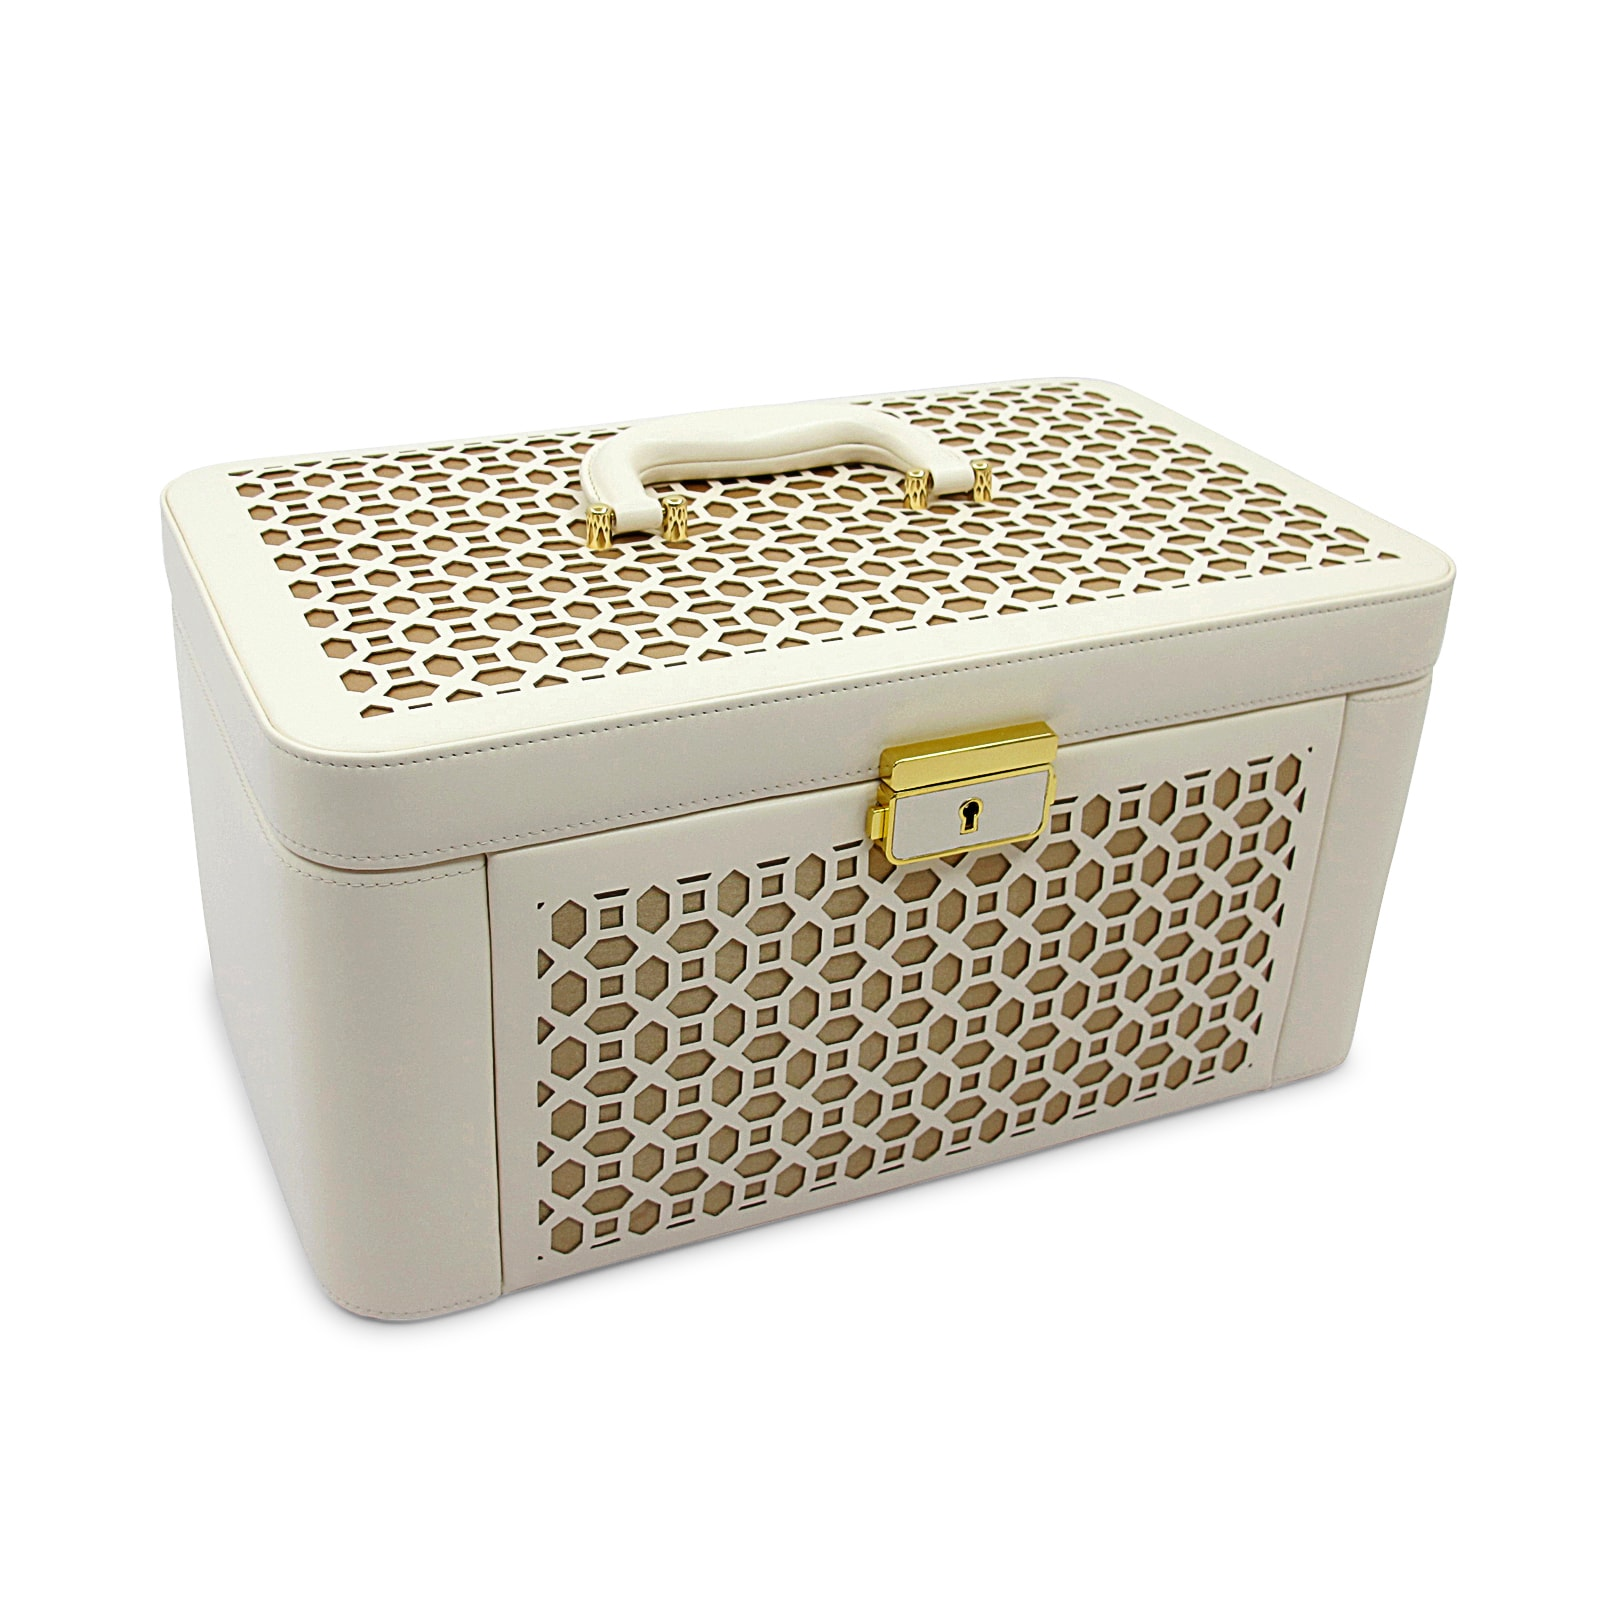 Morelle Co Alexis White Leather Large Pullout Jewelry Box